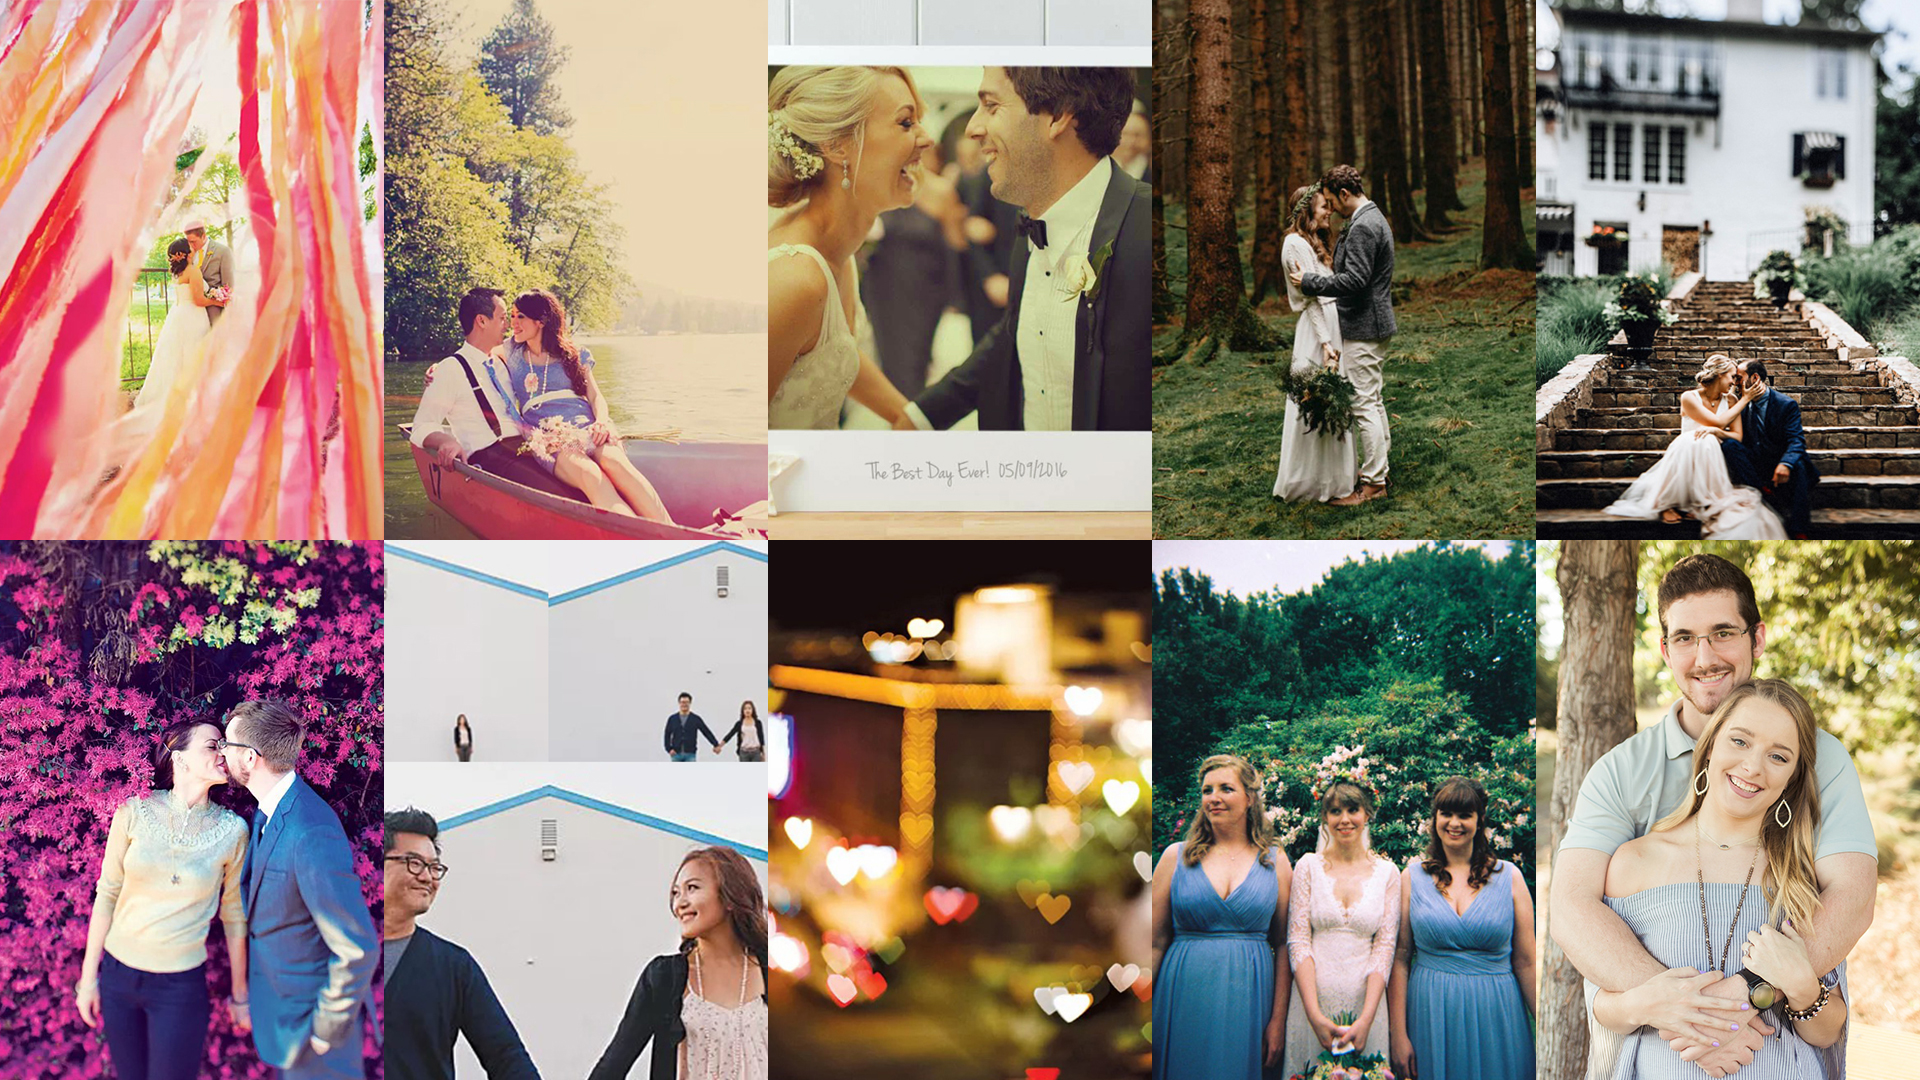 Wedding Photography Styles – What, When And How?